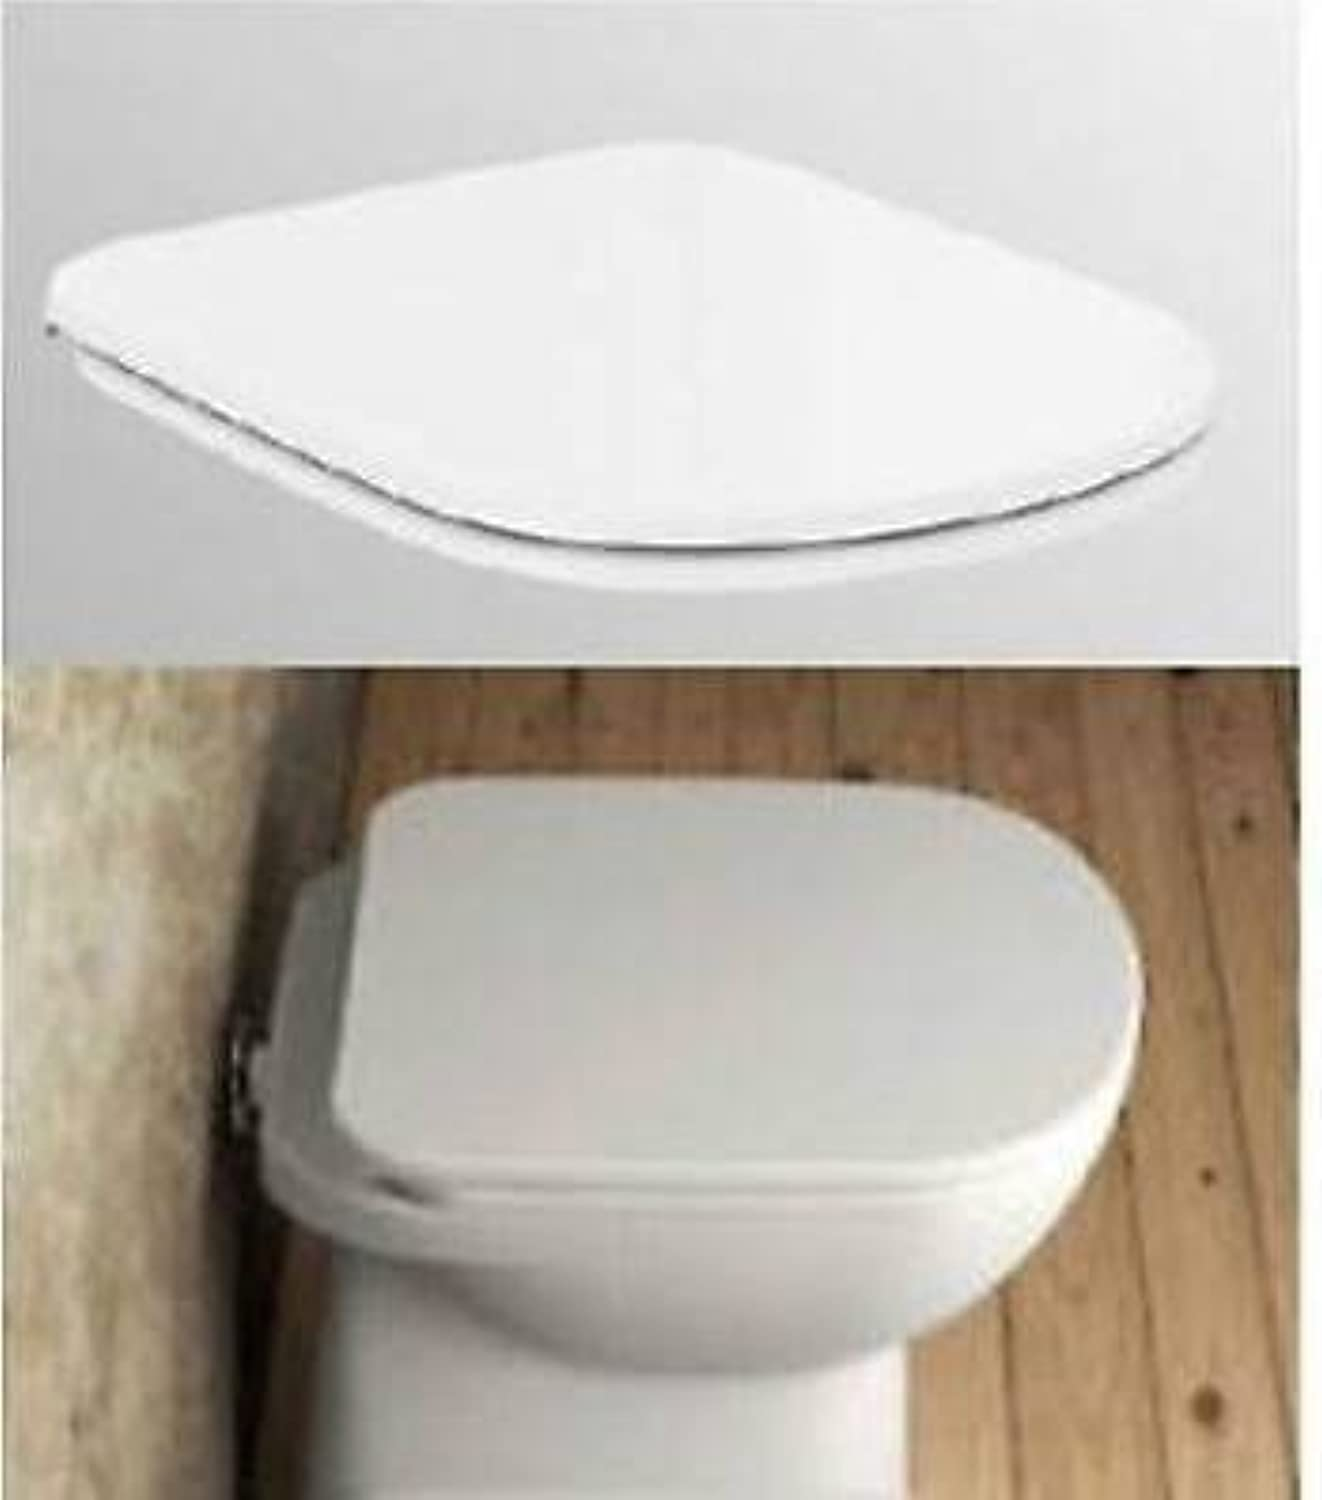 Dolomite Series Gemma 2?j523201?Spare Seat with Metal Hinges White Finish Europe